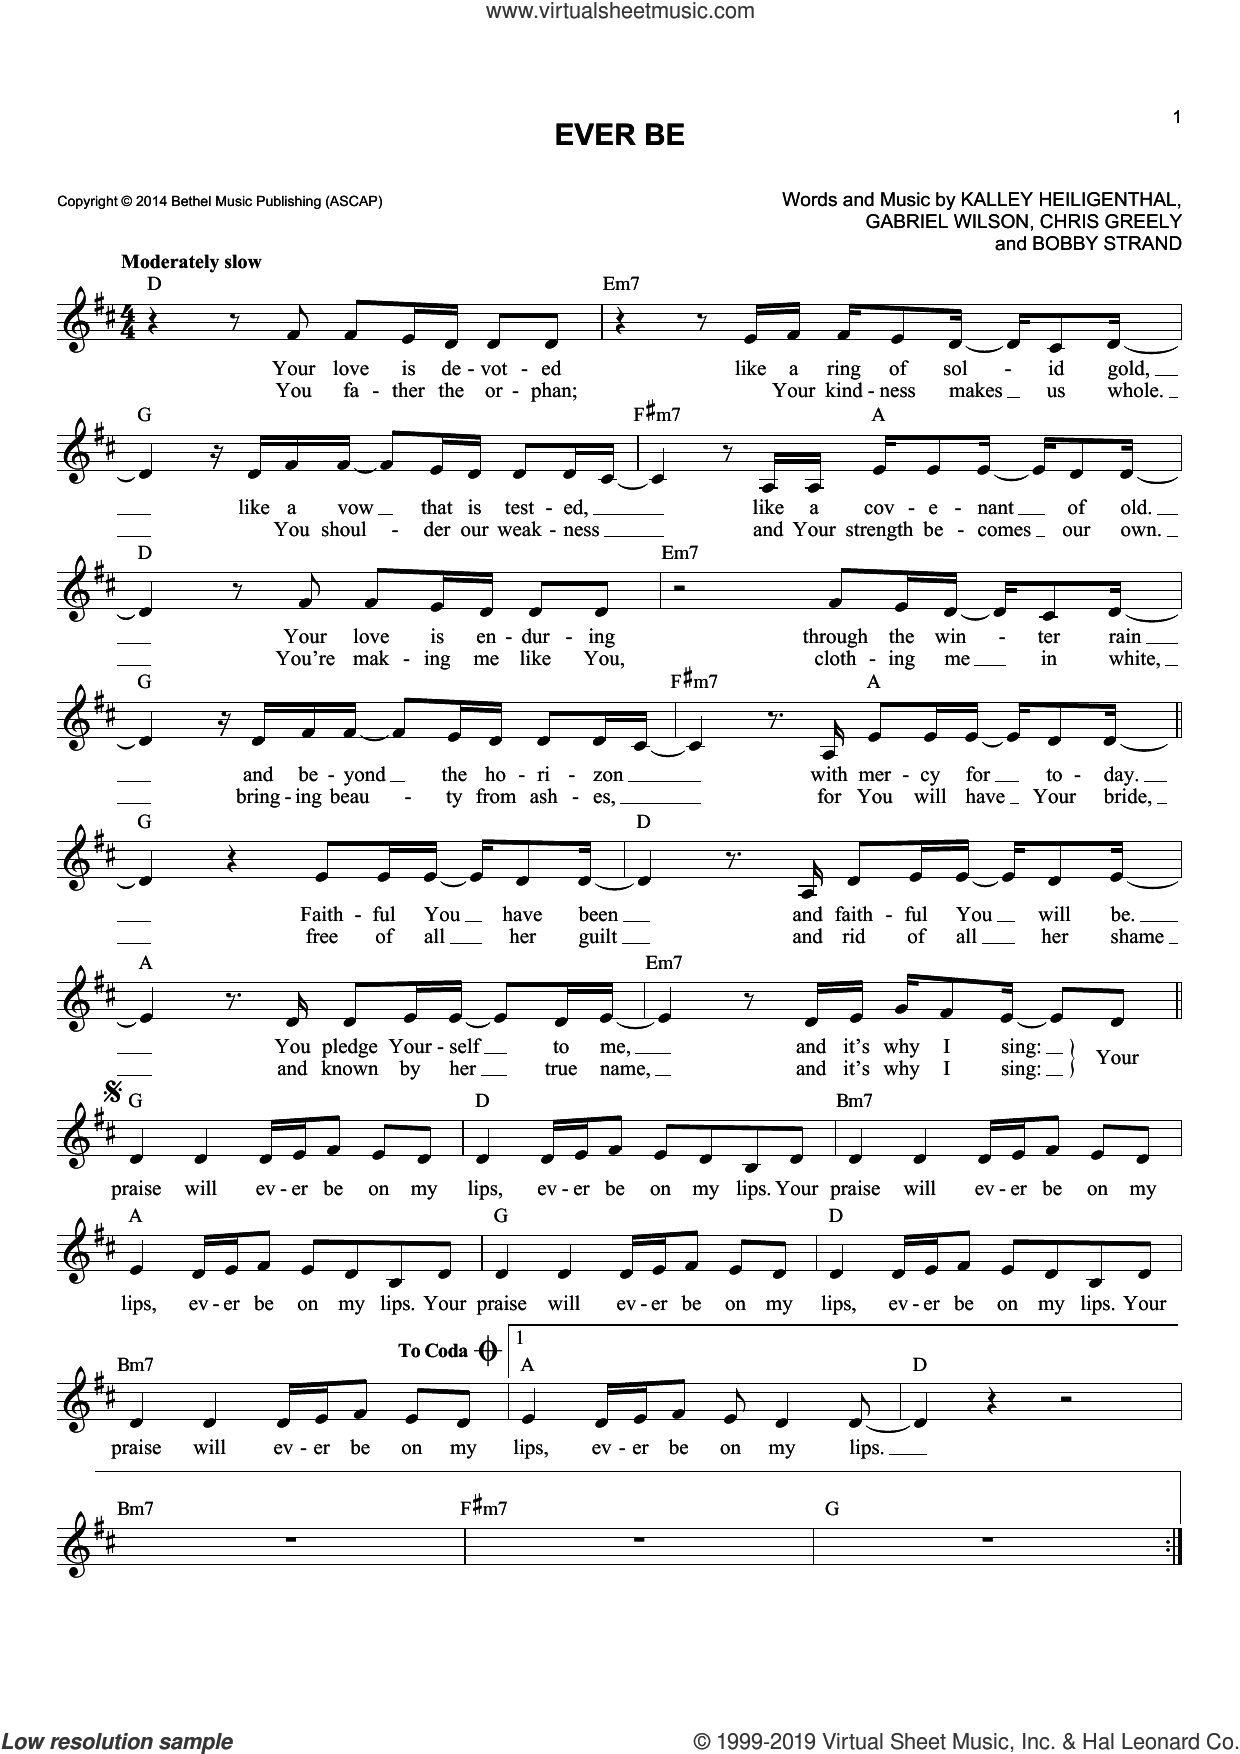 Ever Be sheet music for voice and other instruments (fake book) by Bethel Music, Bobby Strand, Chris Greely, Gabriel Wilson and Kalley Heiligenthal, intermediate skill level